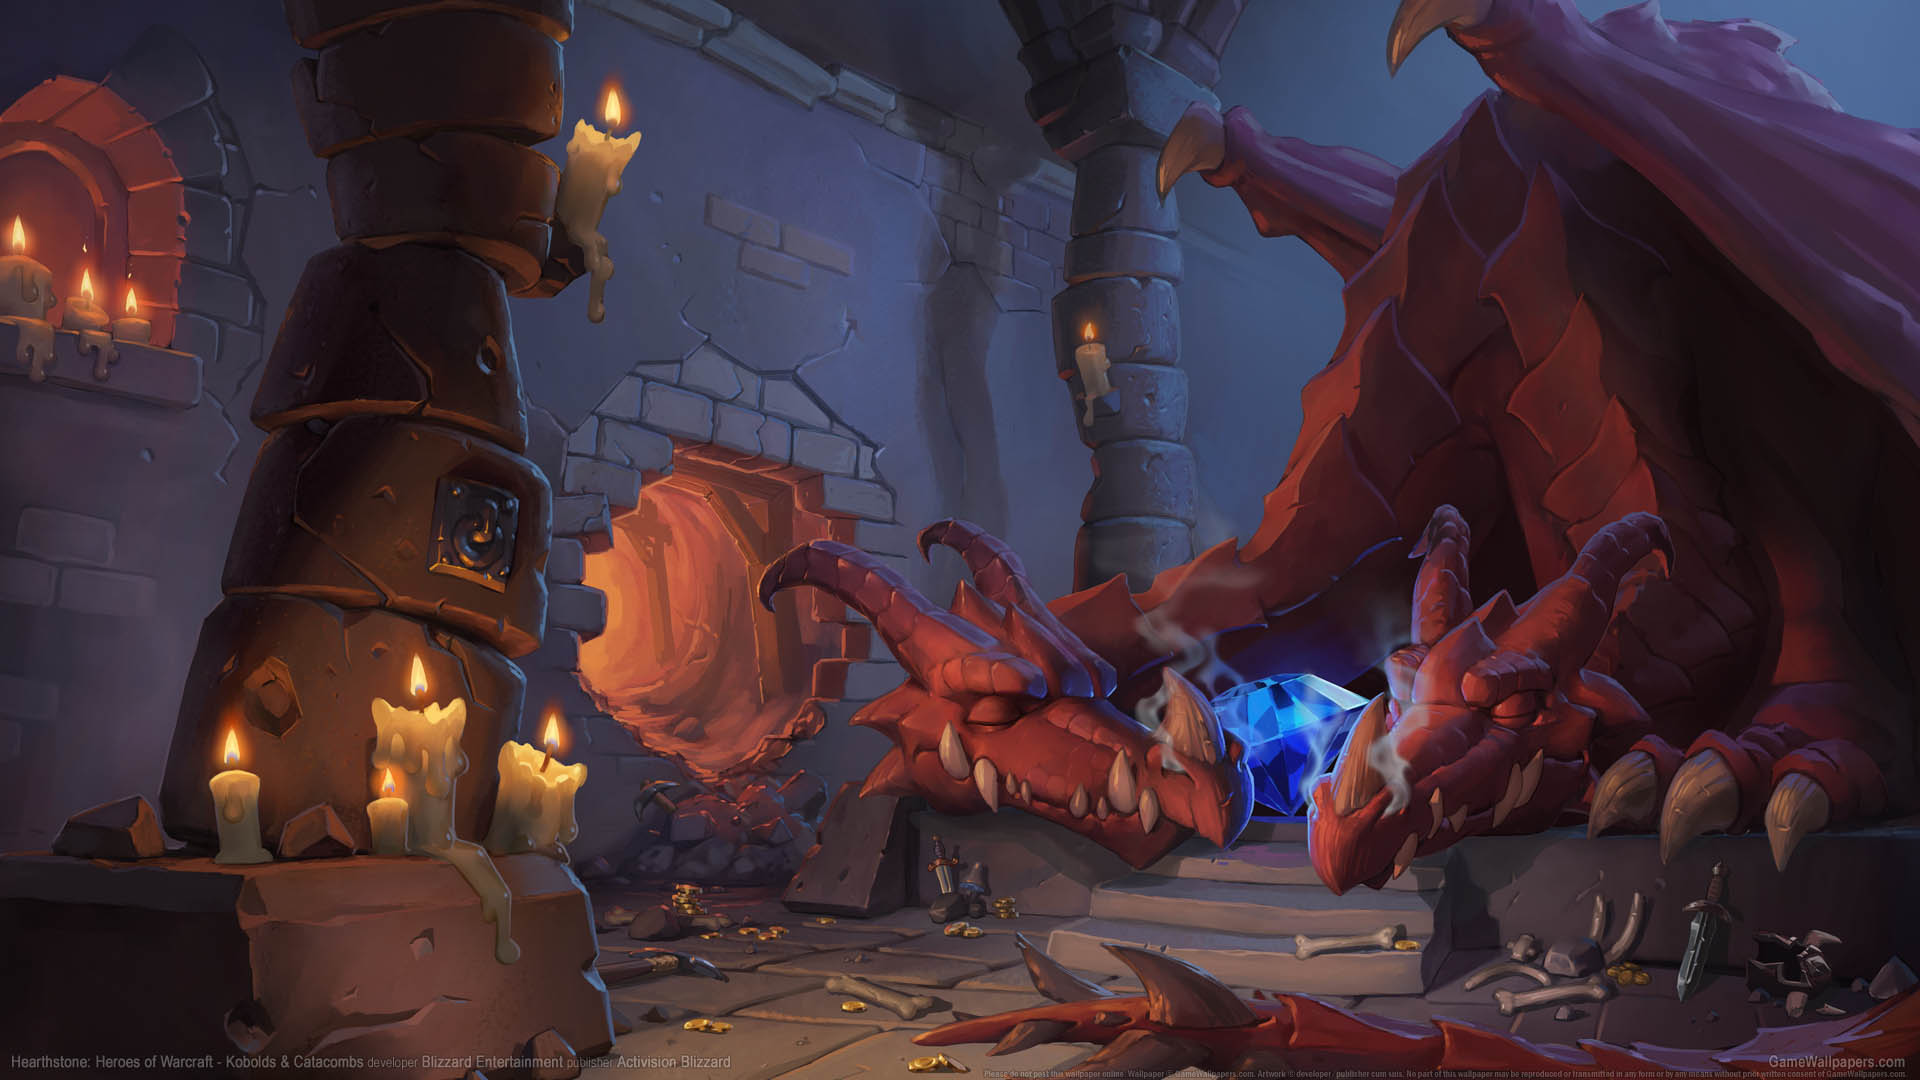 Hearthstone: Heroes of Warcraft - Kobolds & Catacombs wallpaper 01 1920x1080